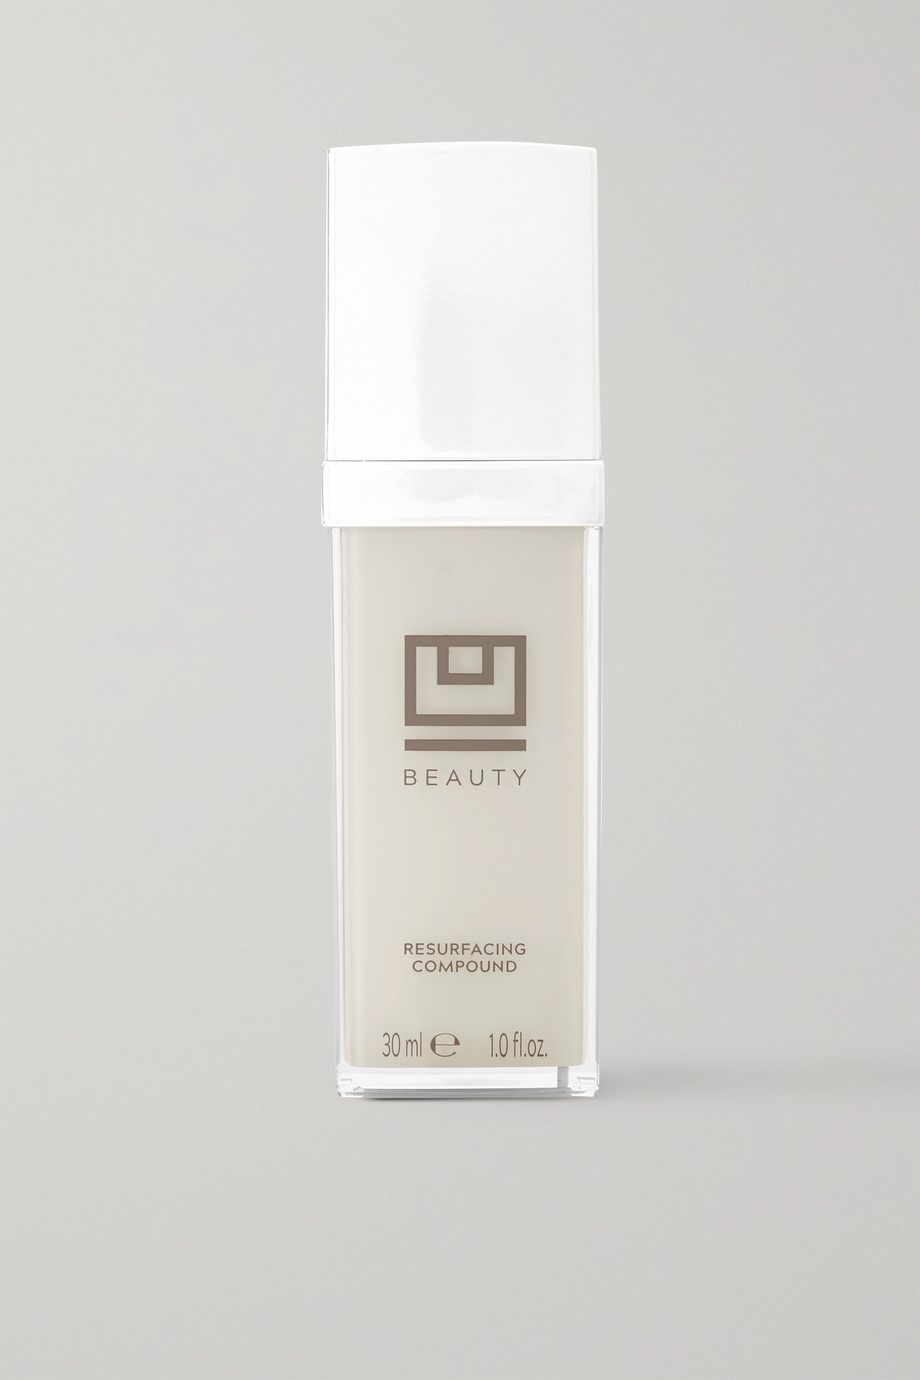 U BEAUTY Resurfacing Compound, 30ml